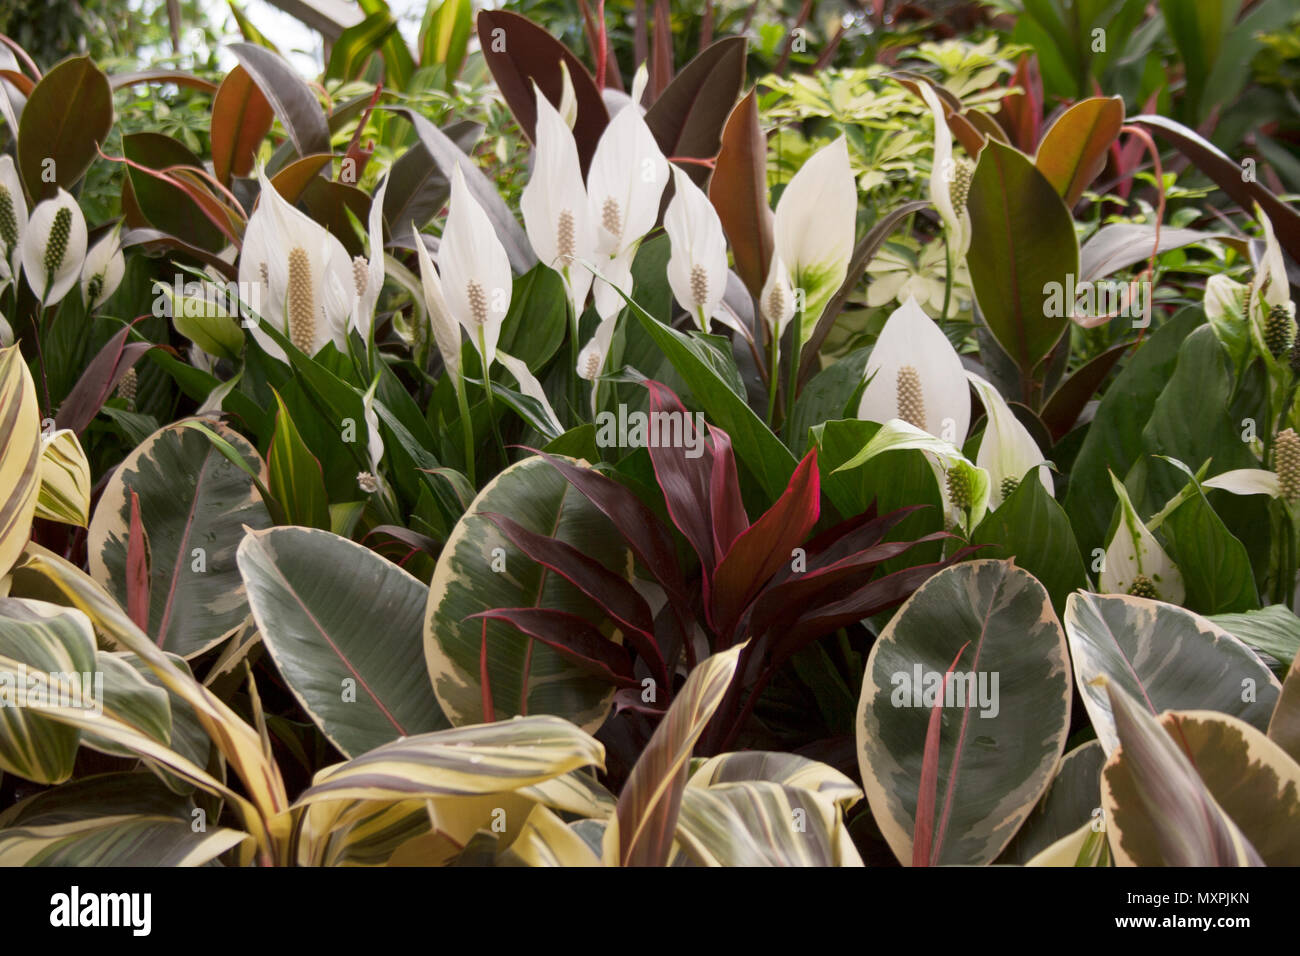 Spathiphyllum Plant White Flowers Behind Indian Rubber Fig Tree